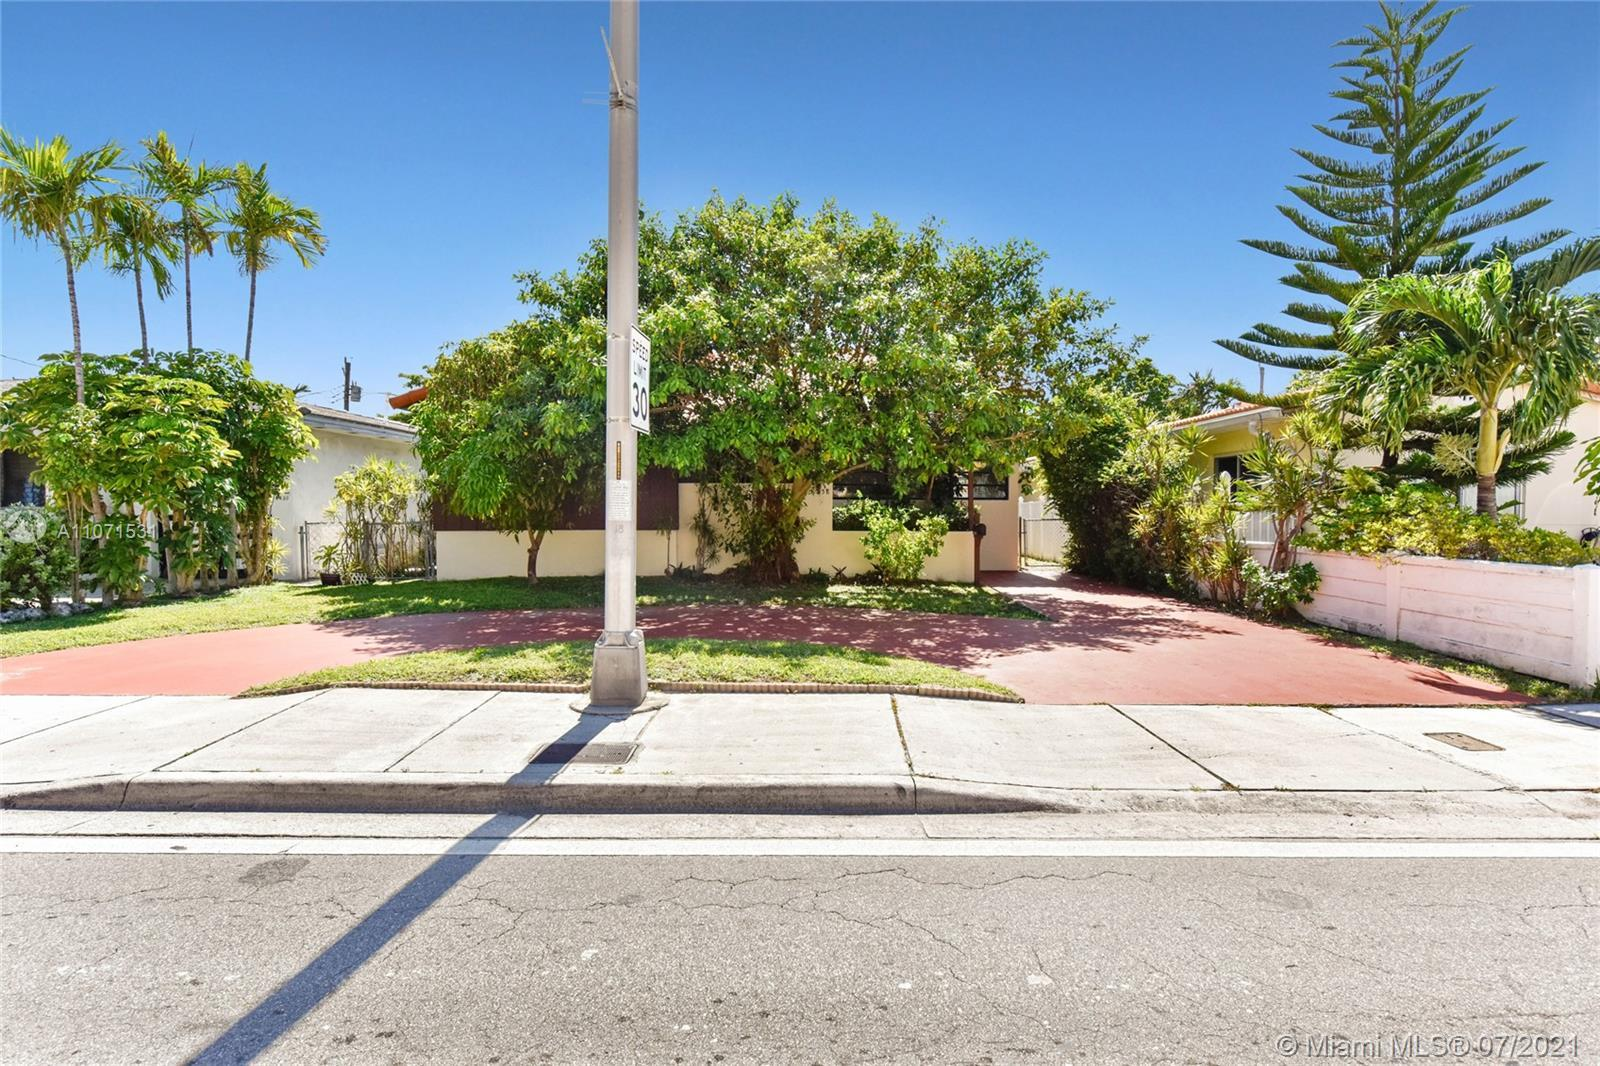 No need to look any further, the search is over! This lovely abode in Surfside is just what you need